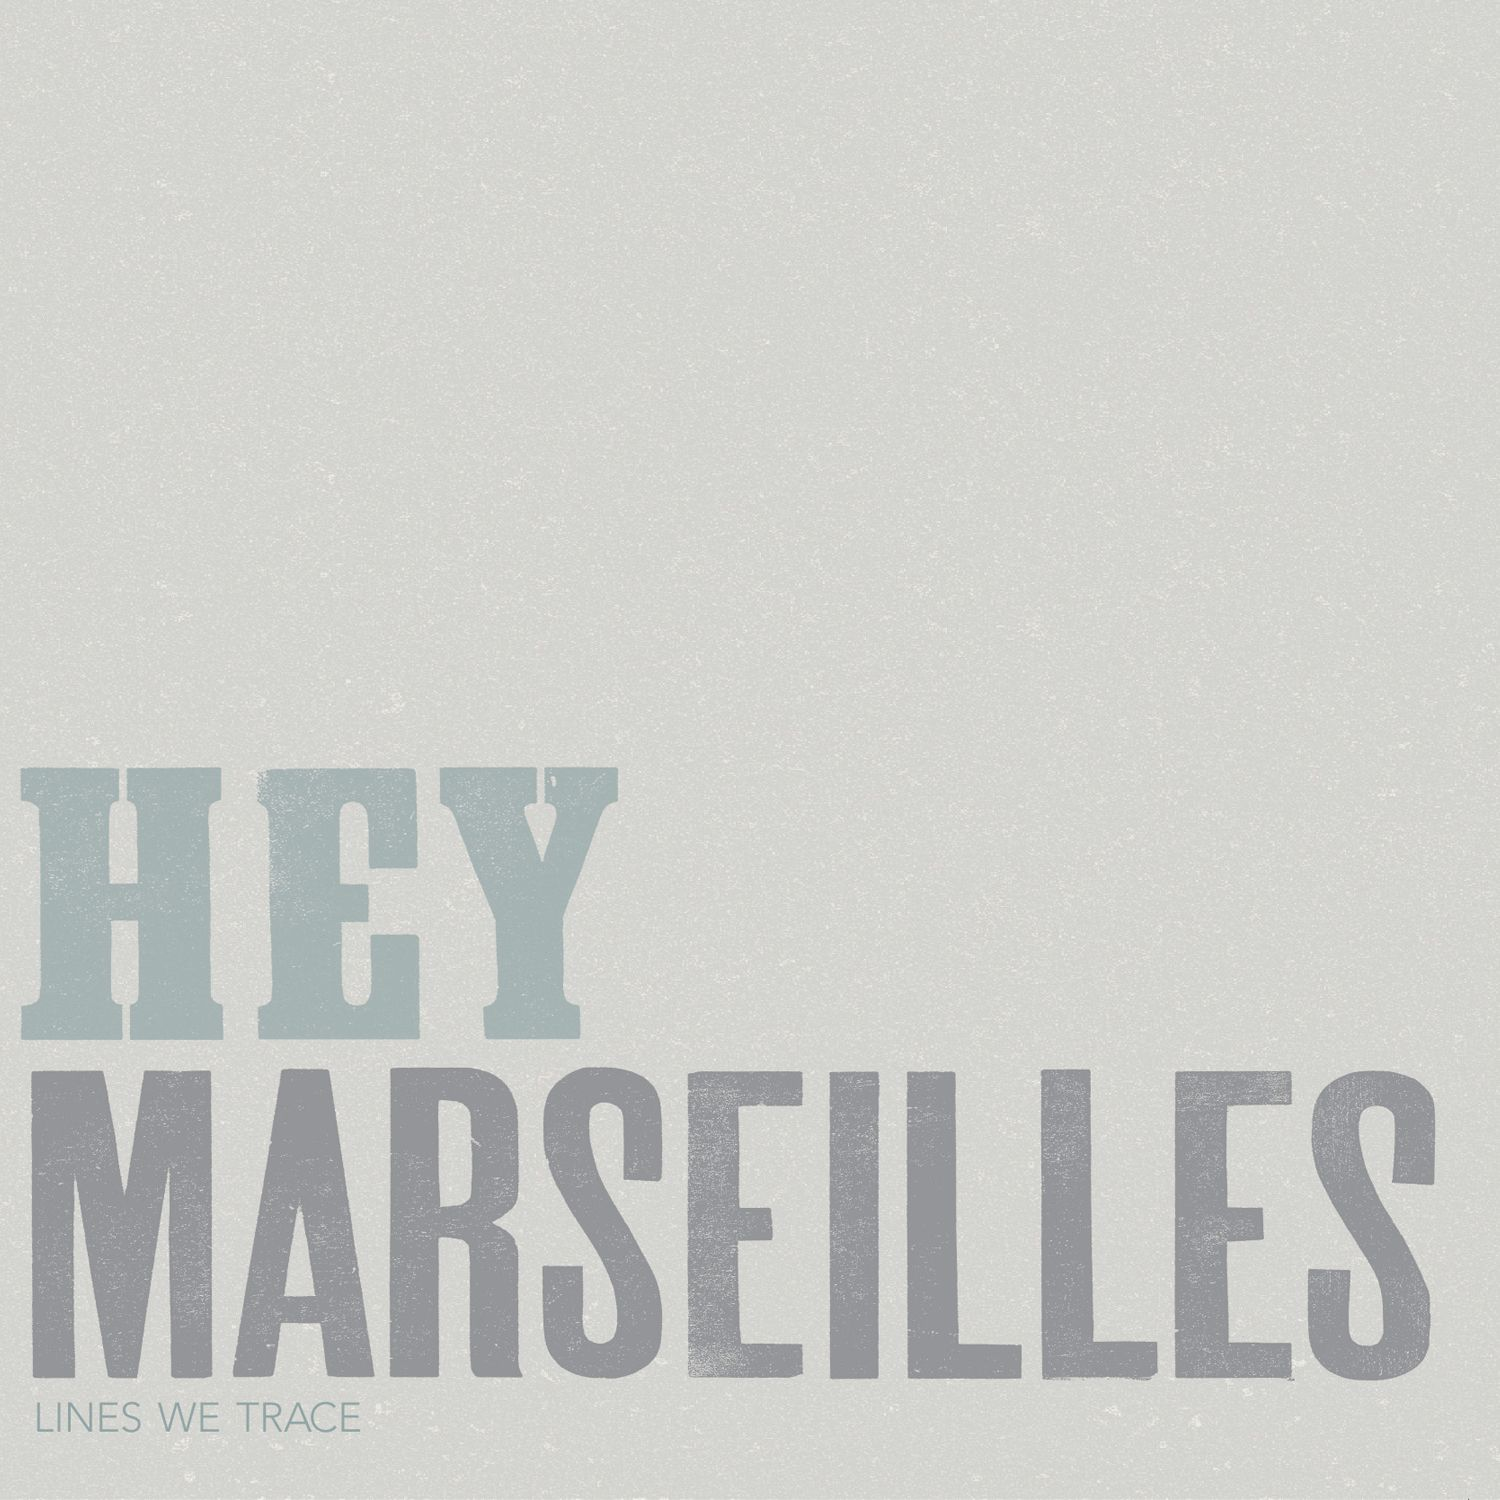 Hey Marseilles Lines We Trace Lp Vinyl New Music Releases